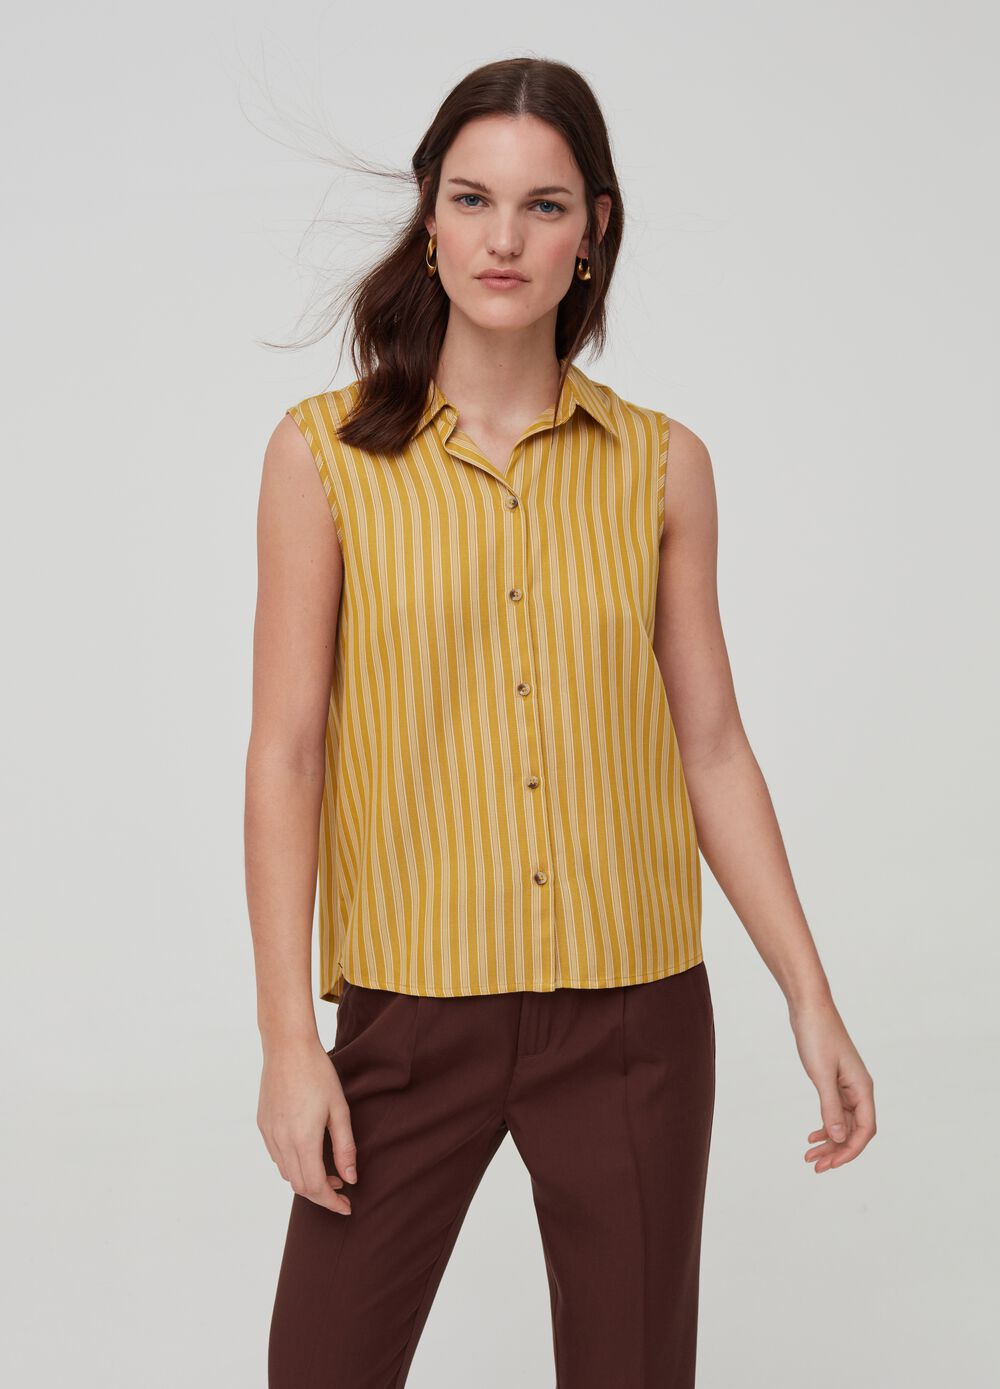 Sleeveless shirt in 100% Lyocell